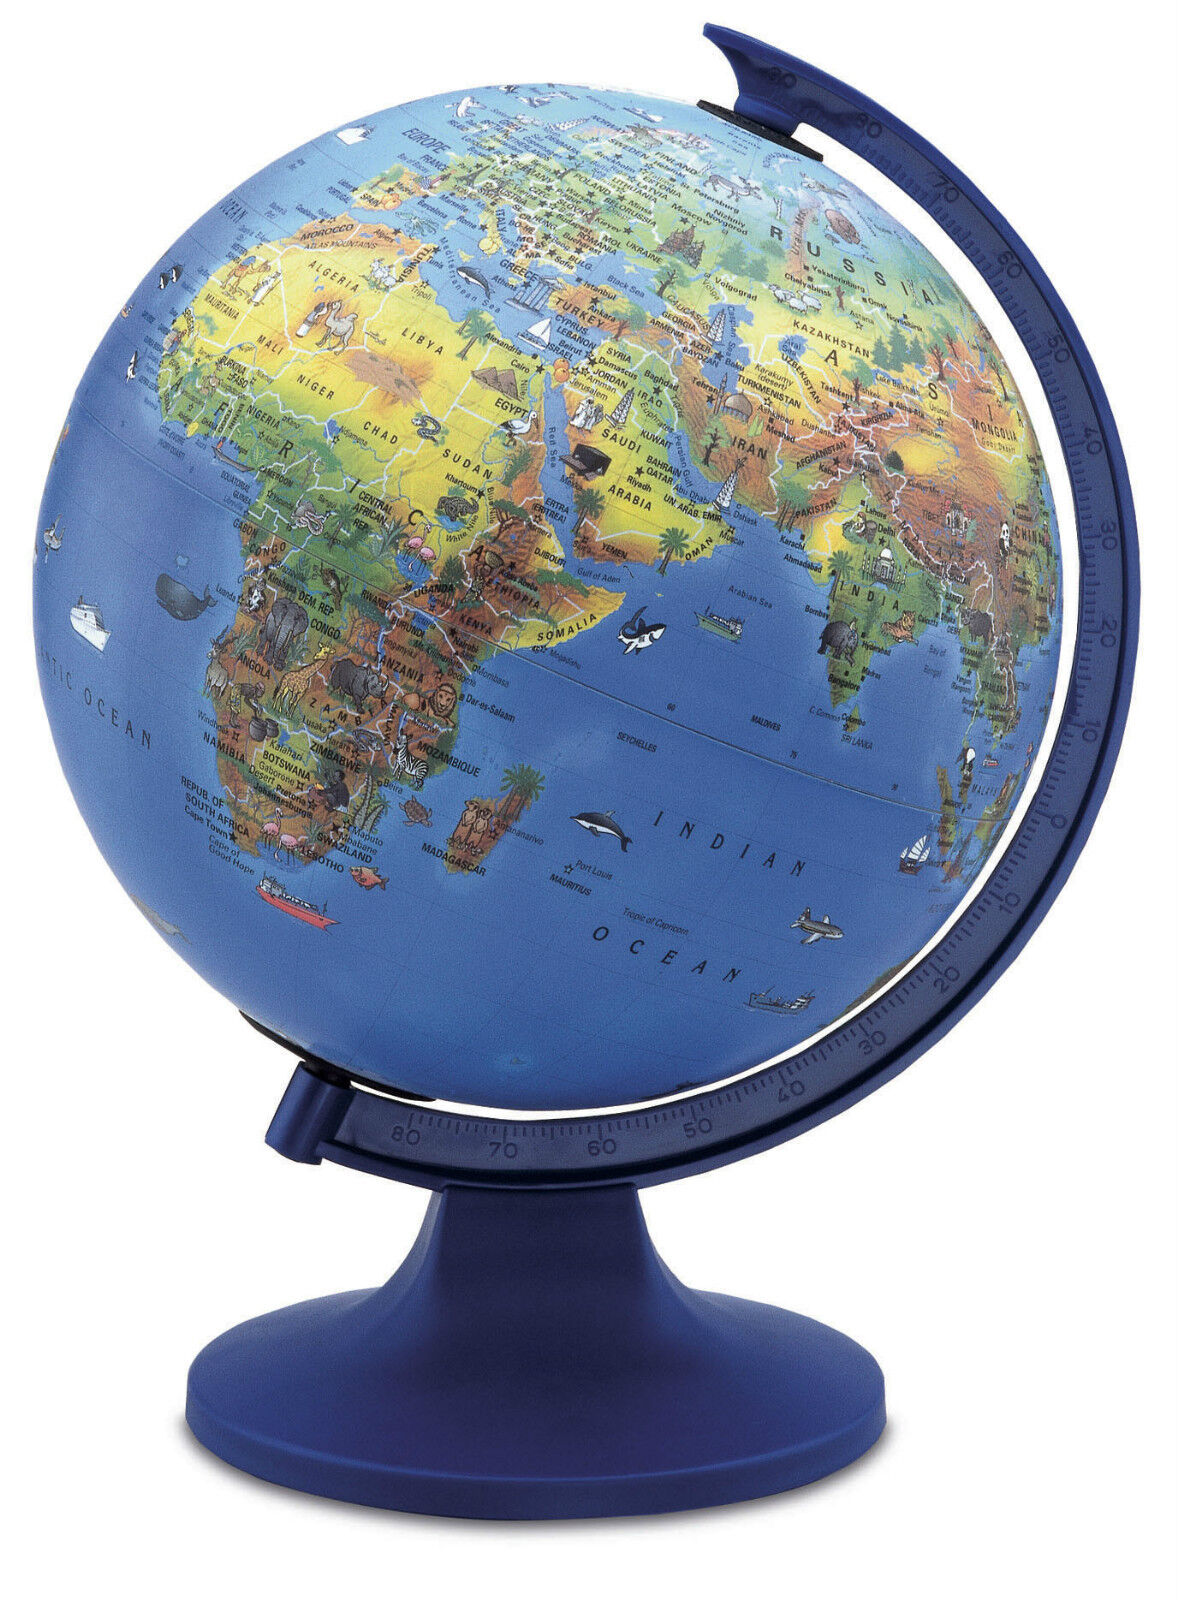 The Globe 4 Kids Educational Illuminated Desktop Globe Gift   20554